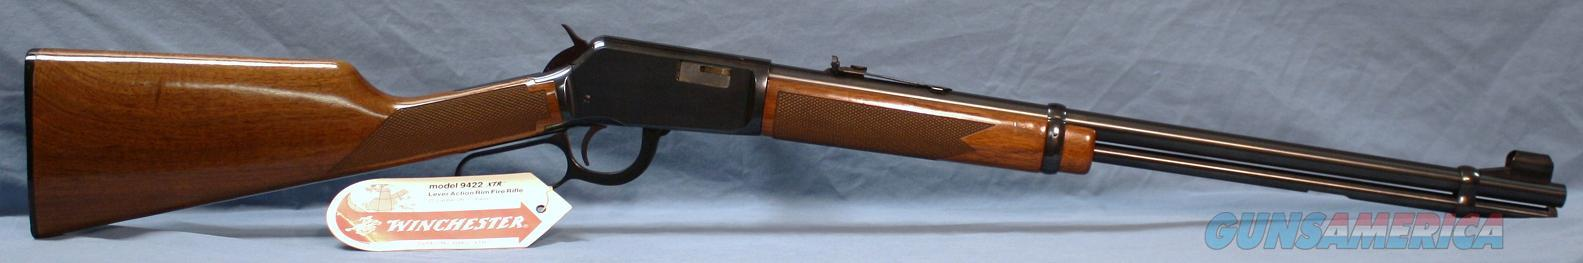 Winchester 94-22 XTR Lever Action Rifle 22 Long Rifle  Guns > Rifles > Winchester Rifles - Modern Lever > Other Lever > Post-64